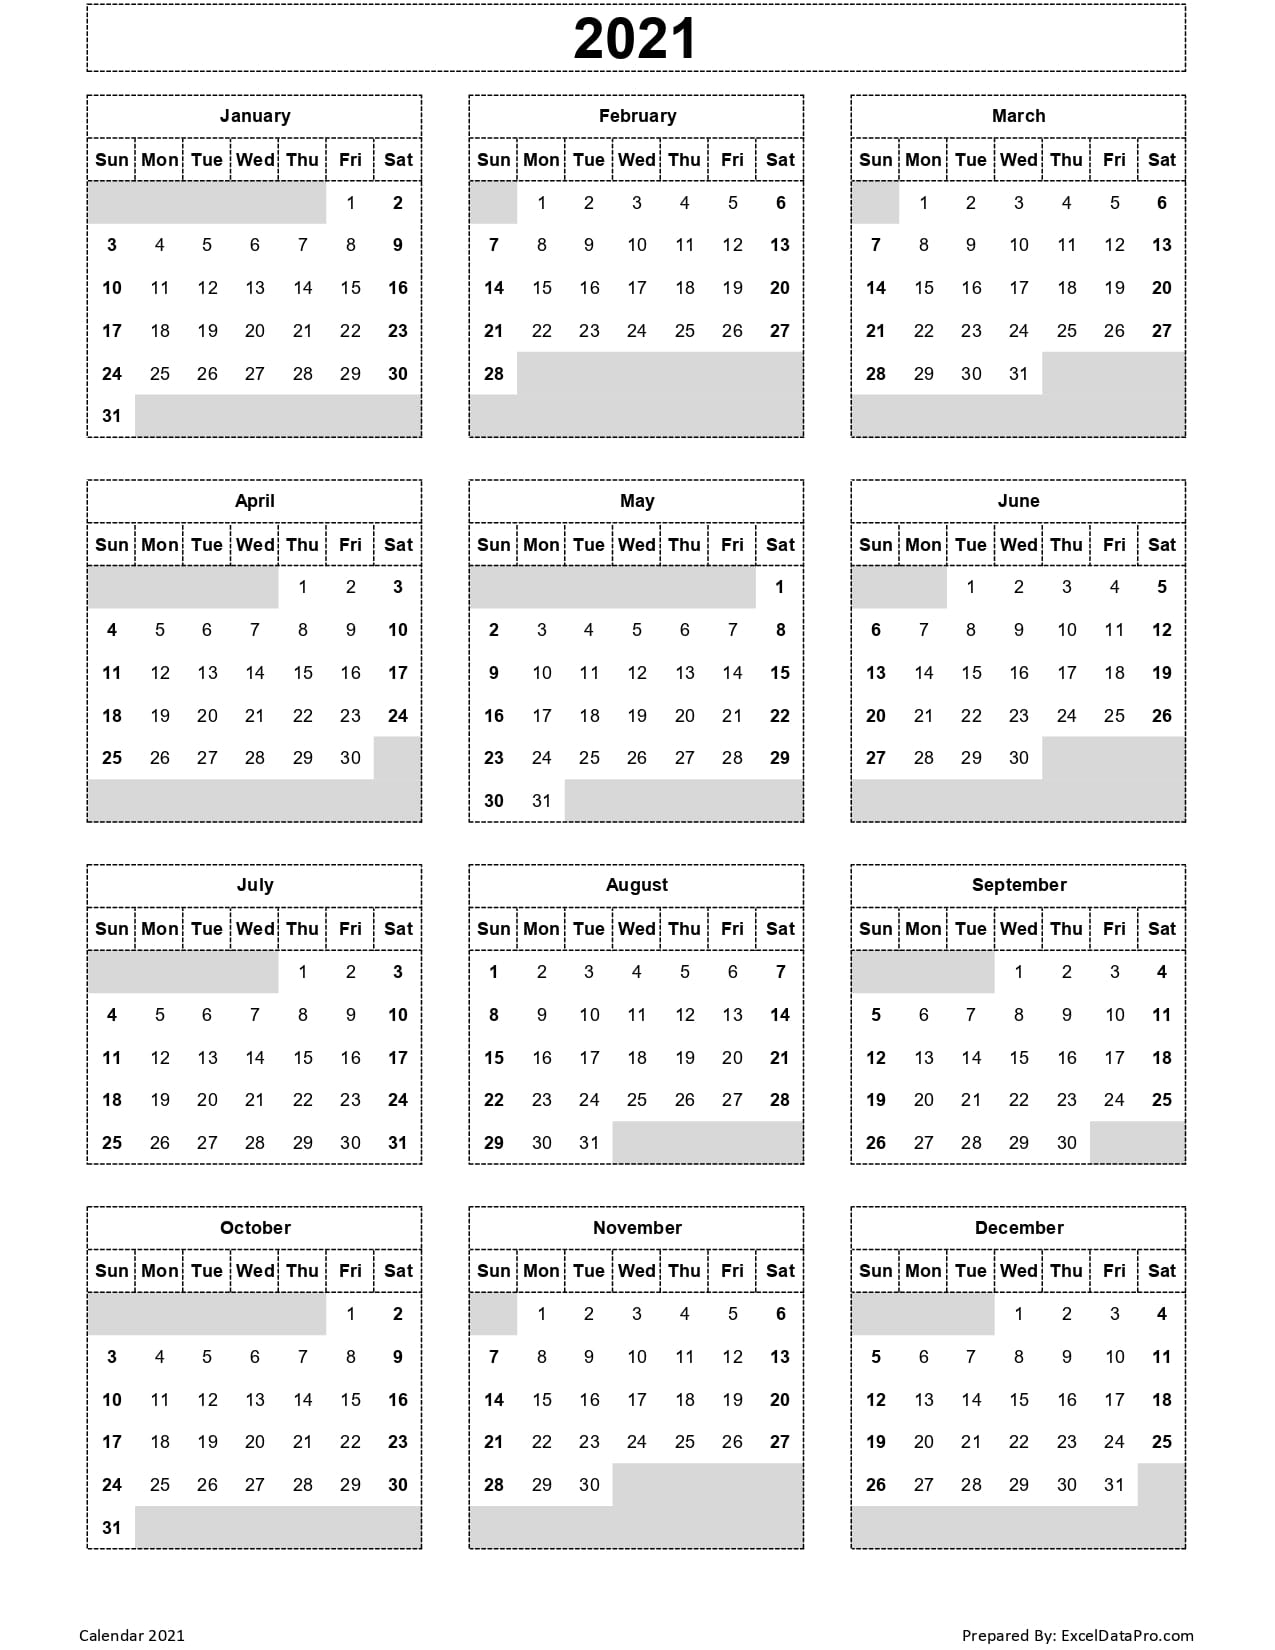 Download 2021 Yearly Calendar (Sun Start) Excel Template - Exceldatapro